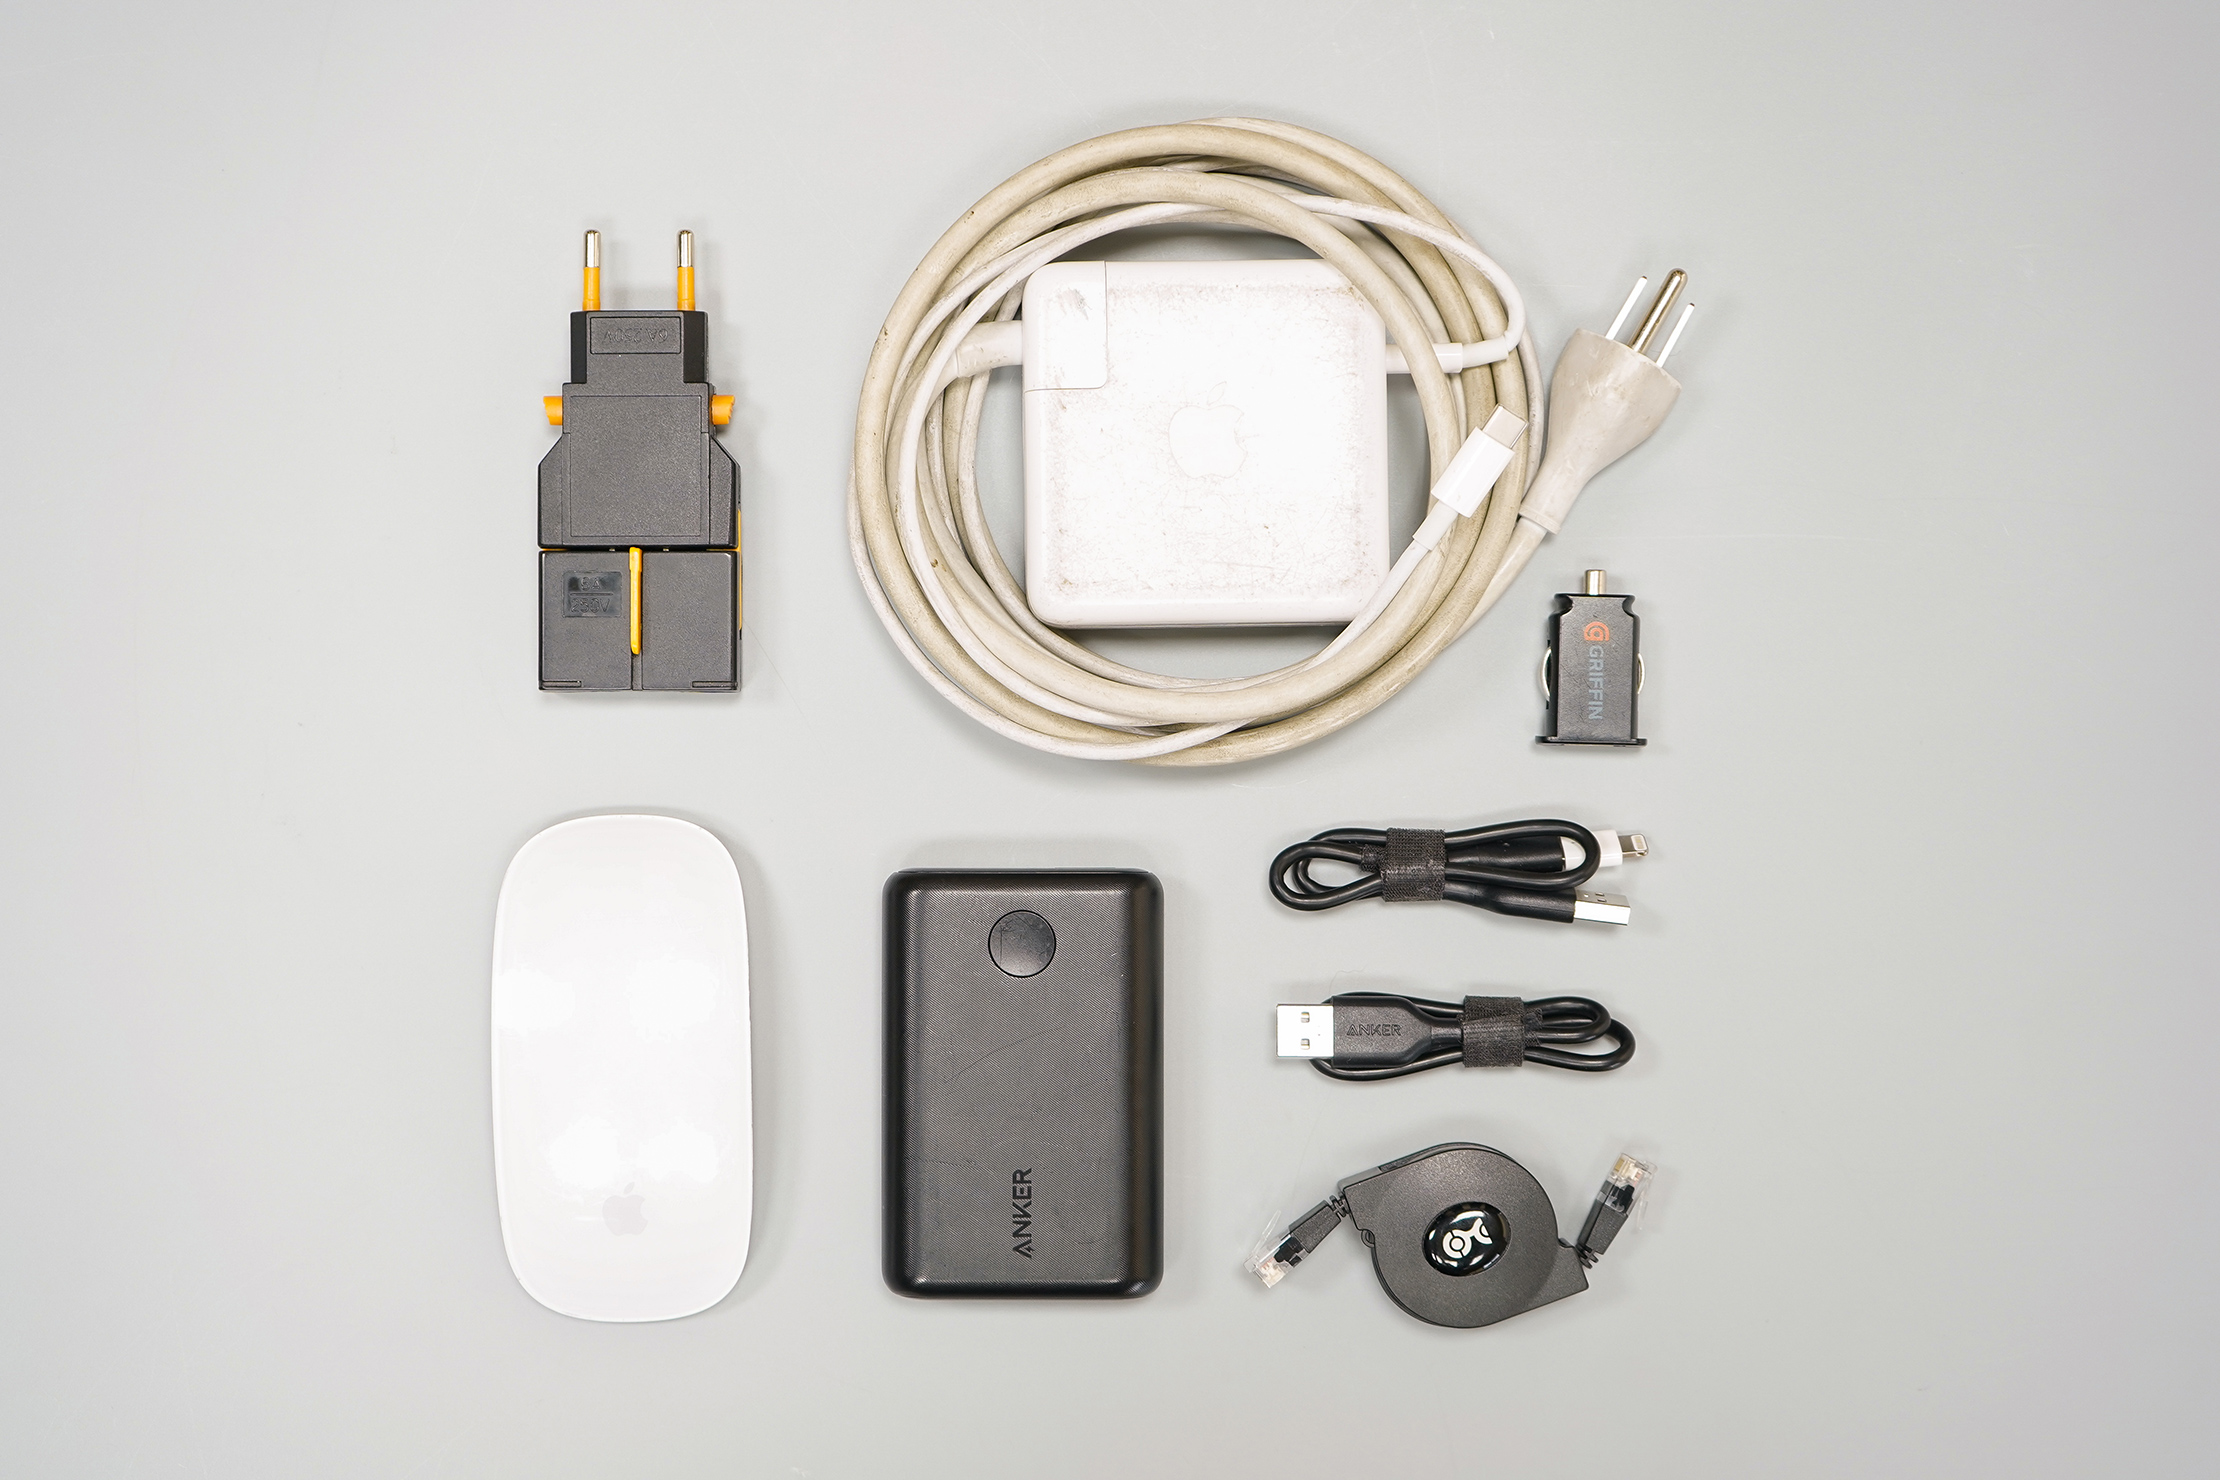 How To Pack a Carry-on Tech Accessories Flat Lay